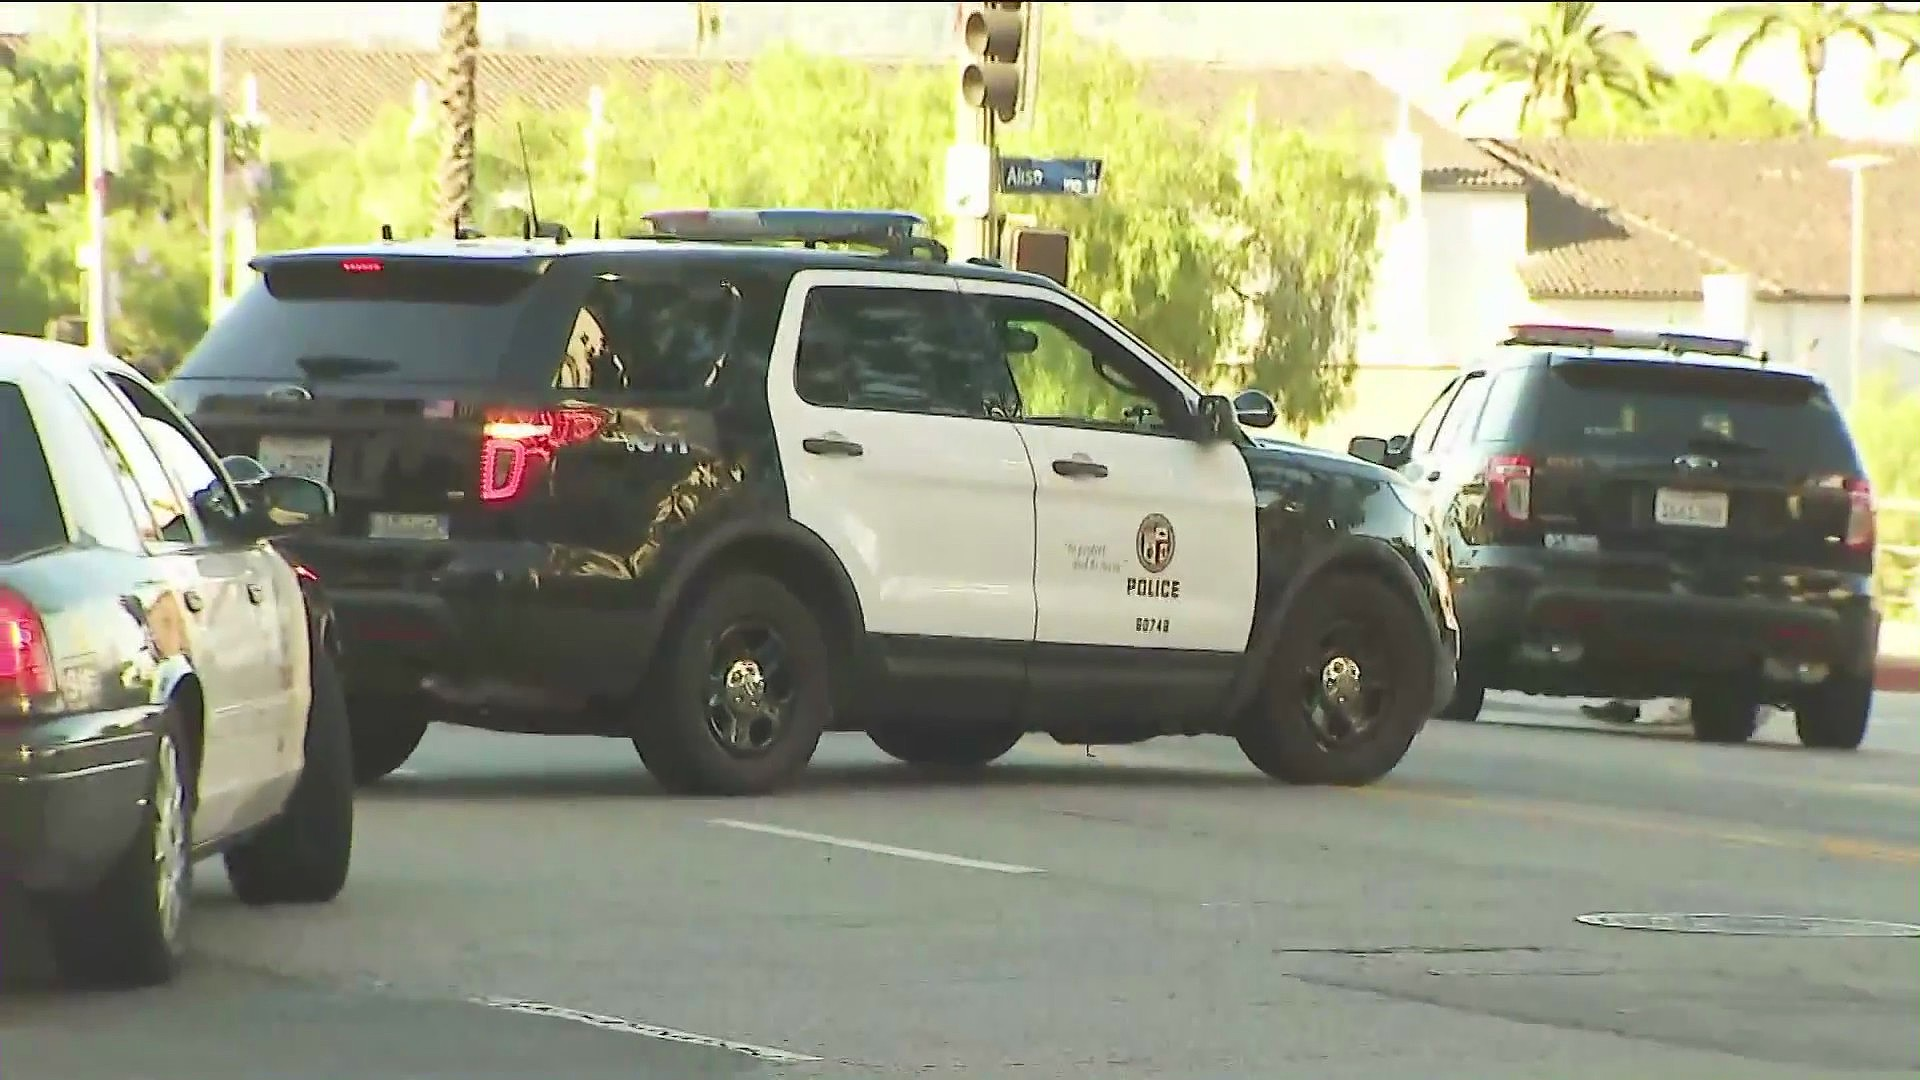 A Los Angeles Police Department vehicle is seen in this file image. (KTLA)